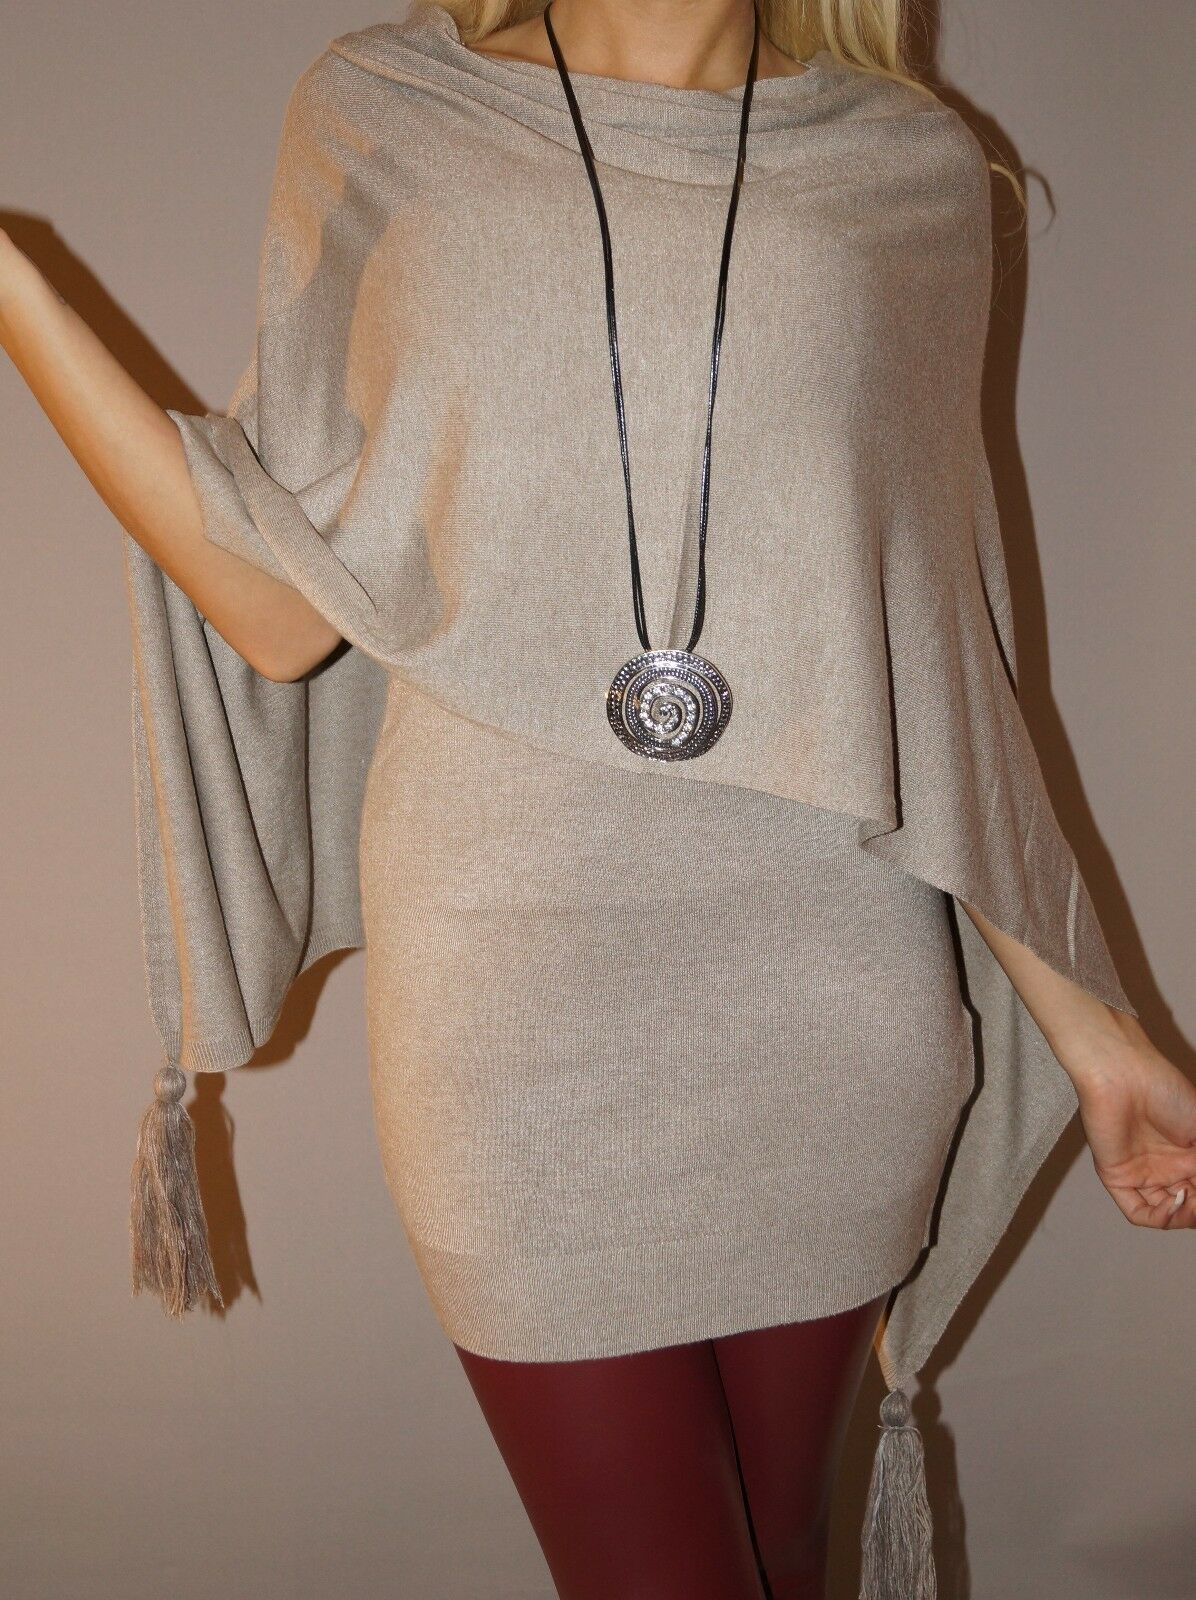 NEU Angesagtes Twin Set Strick Long Shirt + Poncho S 34 36 Beige Herbst Trend